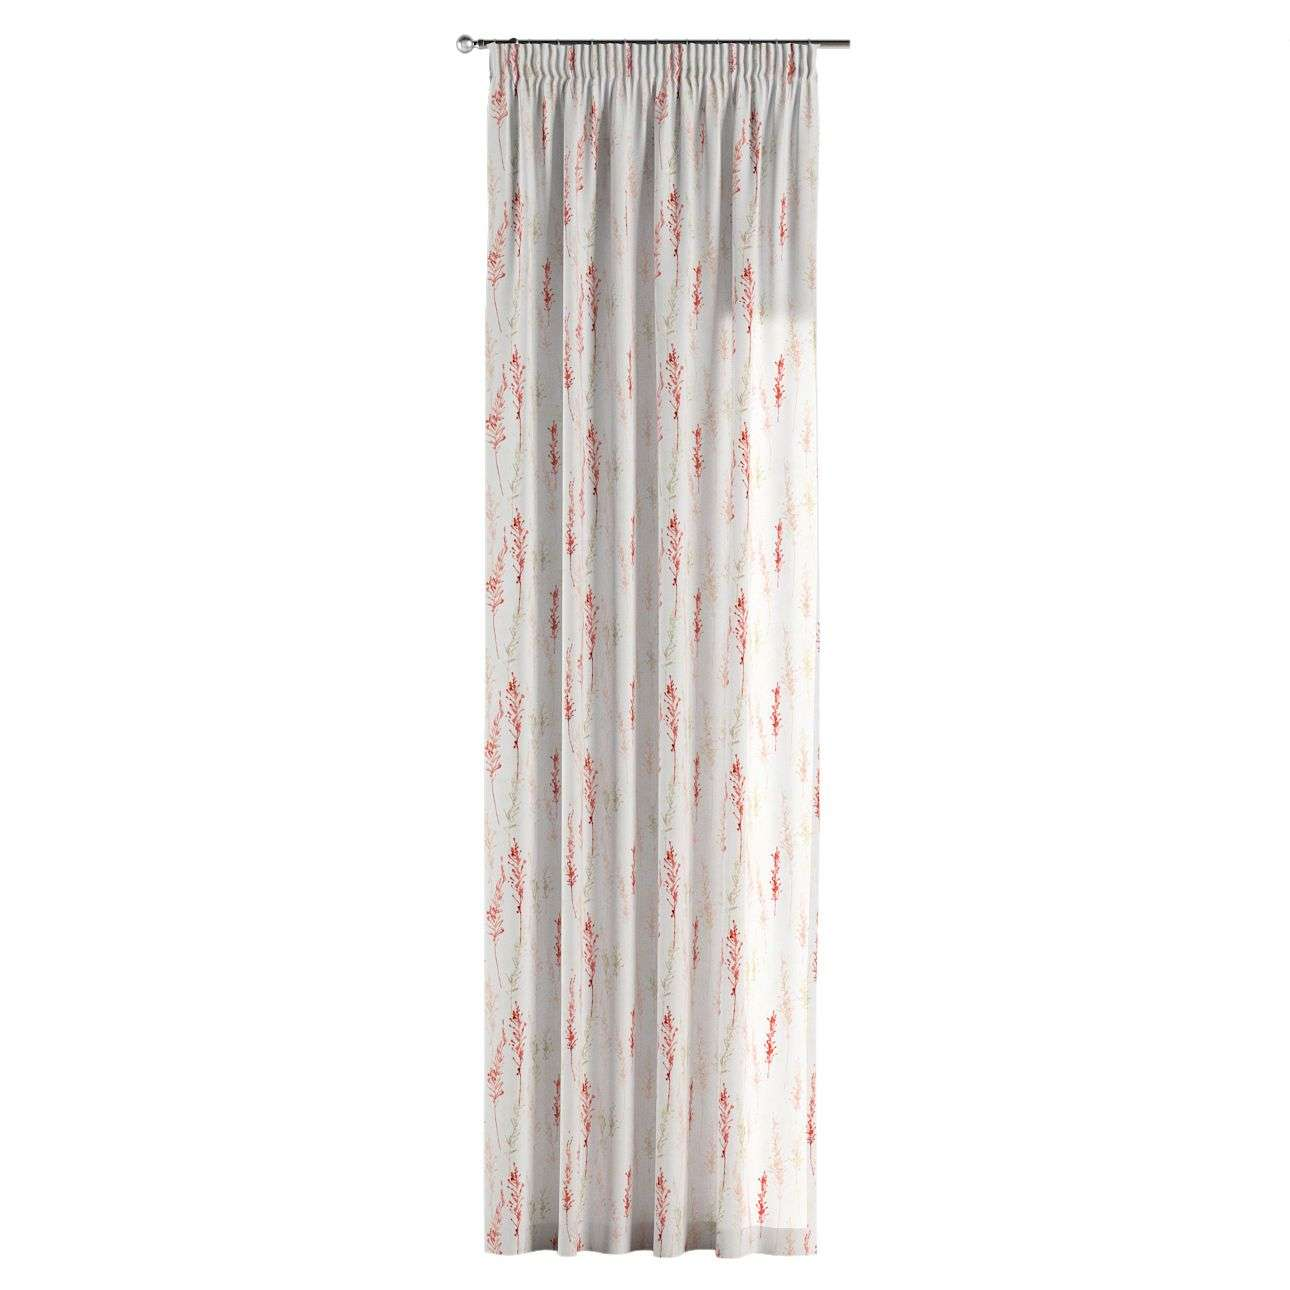 Pencil pleat curtains in collection Acapulco, fabric: 141-37